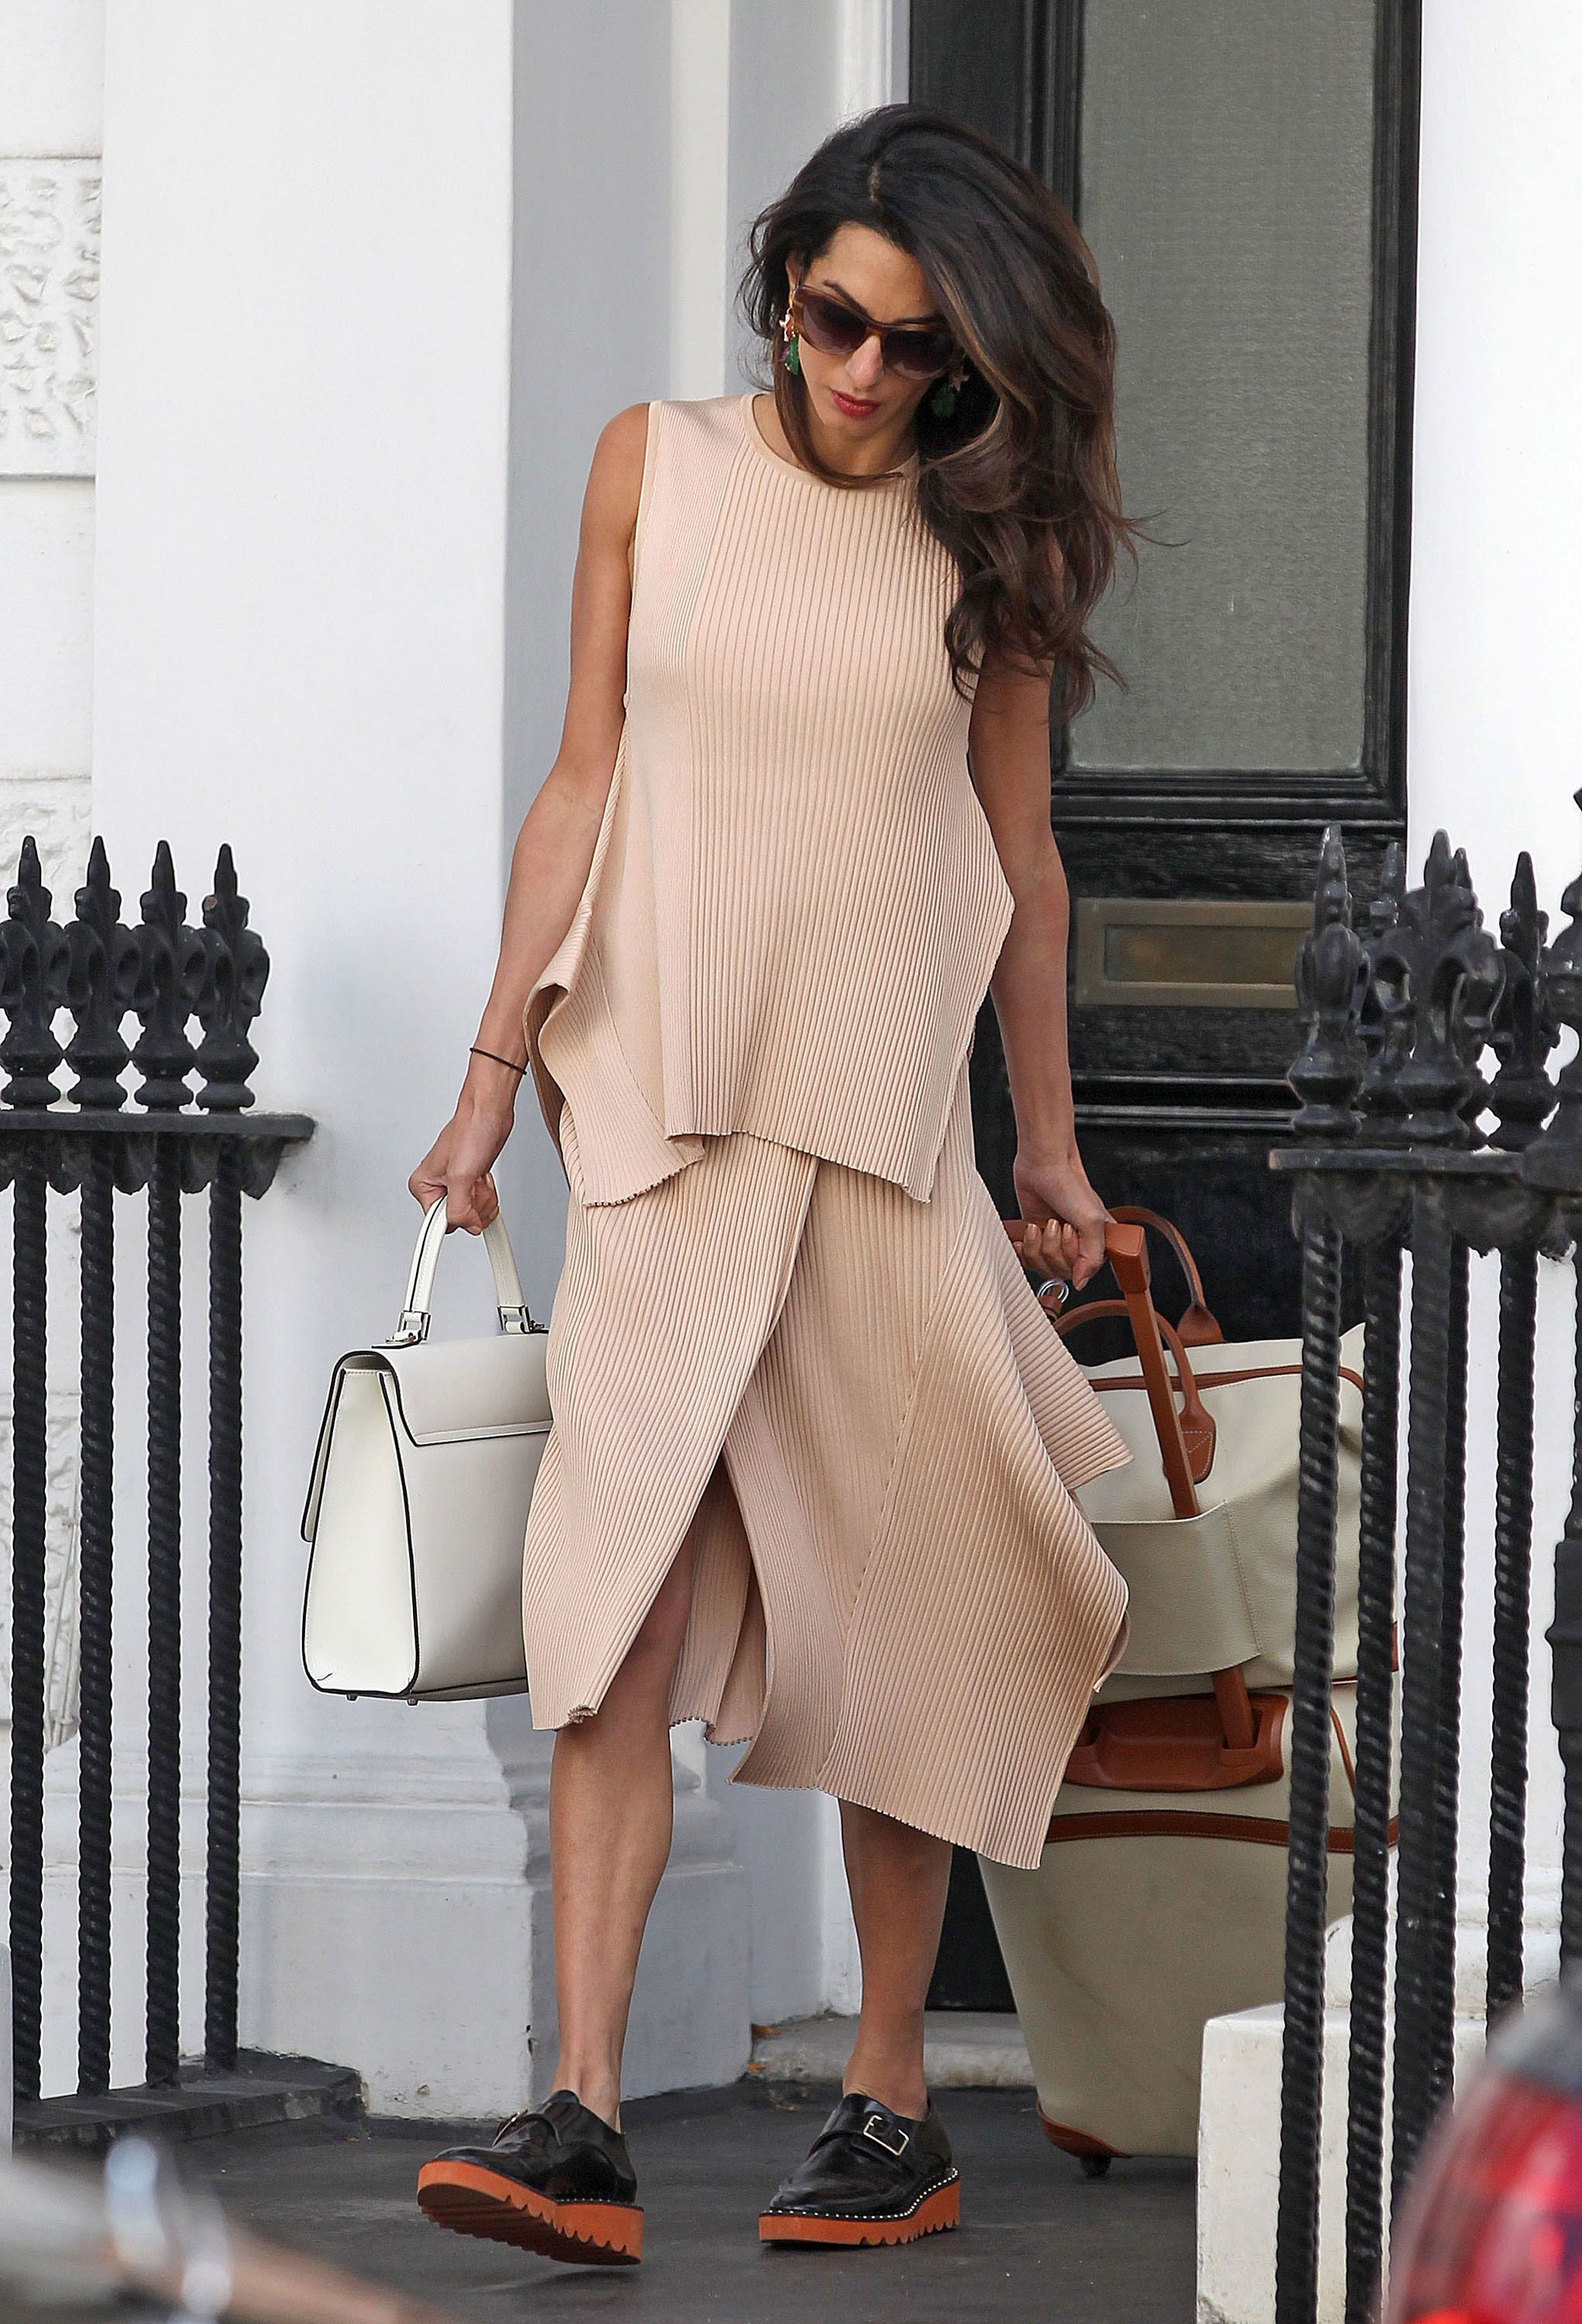 Ellecom Best Looks Amal Clooney Stella Mccartney Amal Clooney And